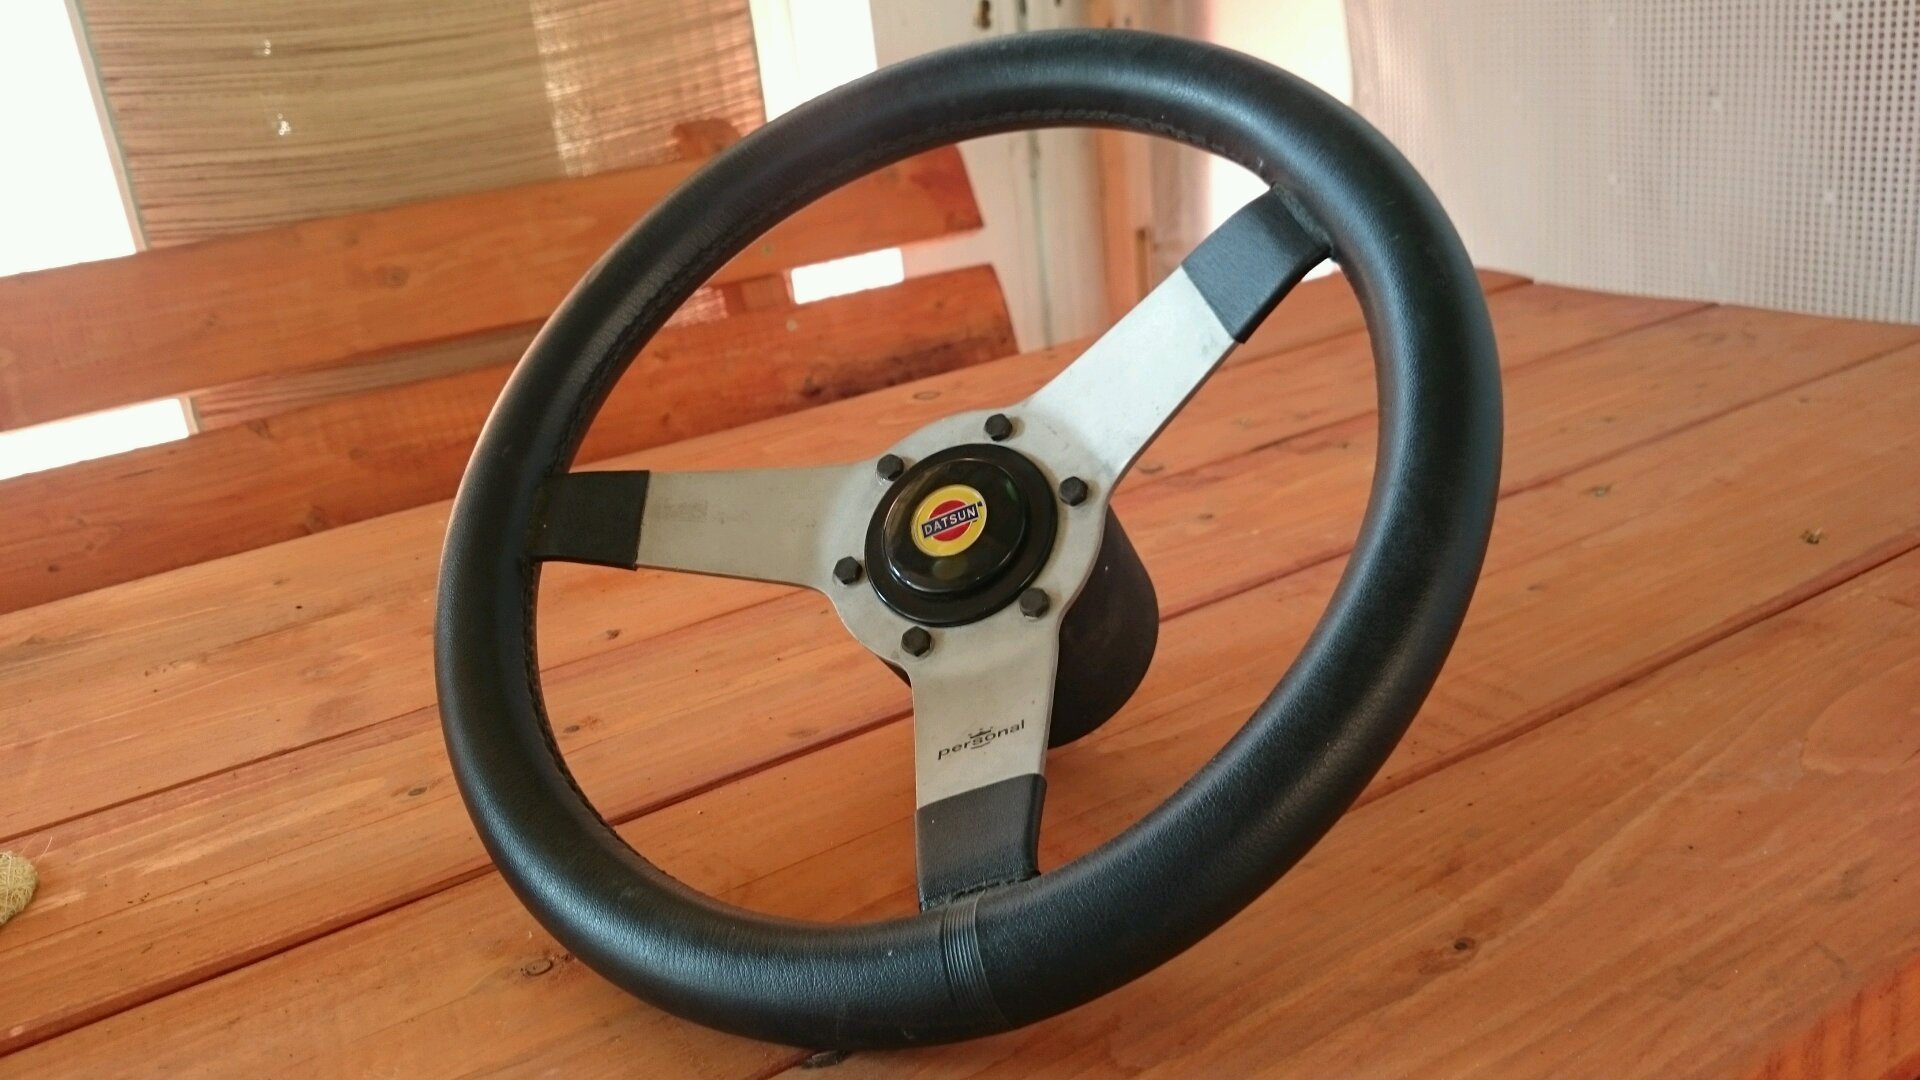 Original Personal Datsun Steering Wheel For My S12 What Kind Of Steering Wheel You Use